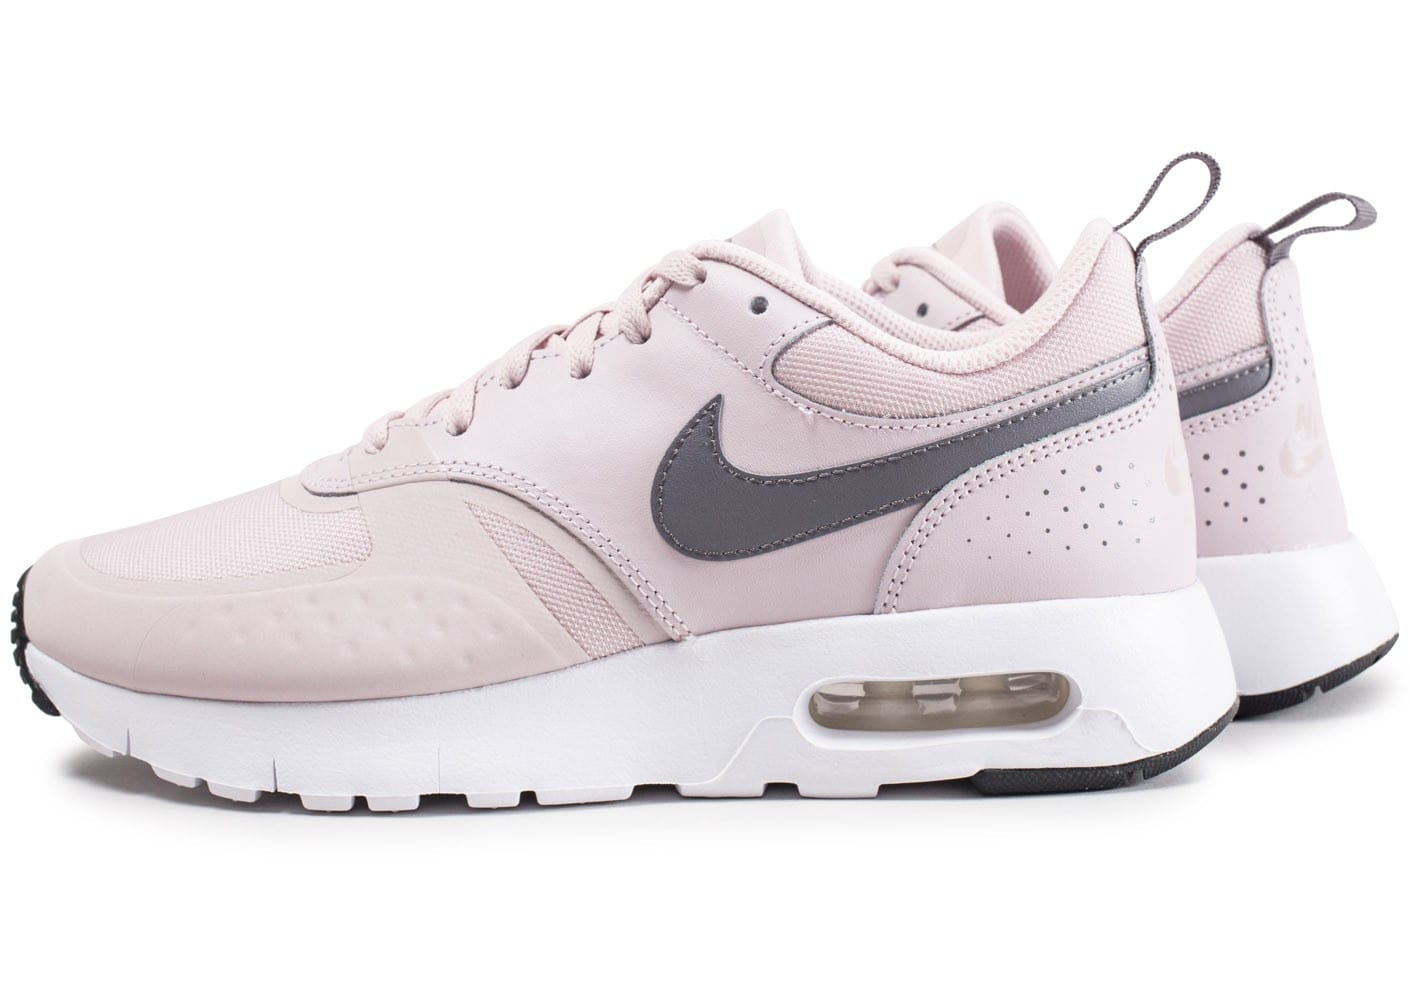 photos officielles 271d7 e67a2 Nike Air Max Vision junior rose et blanche - Chaussures ...